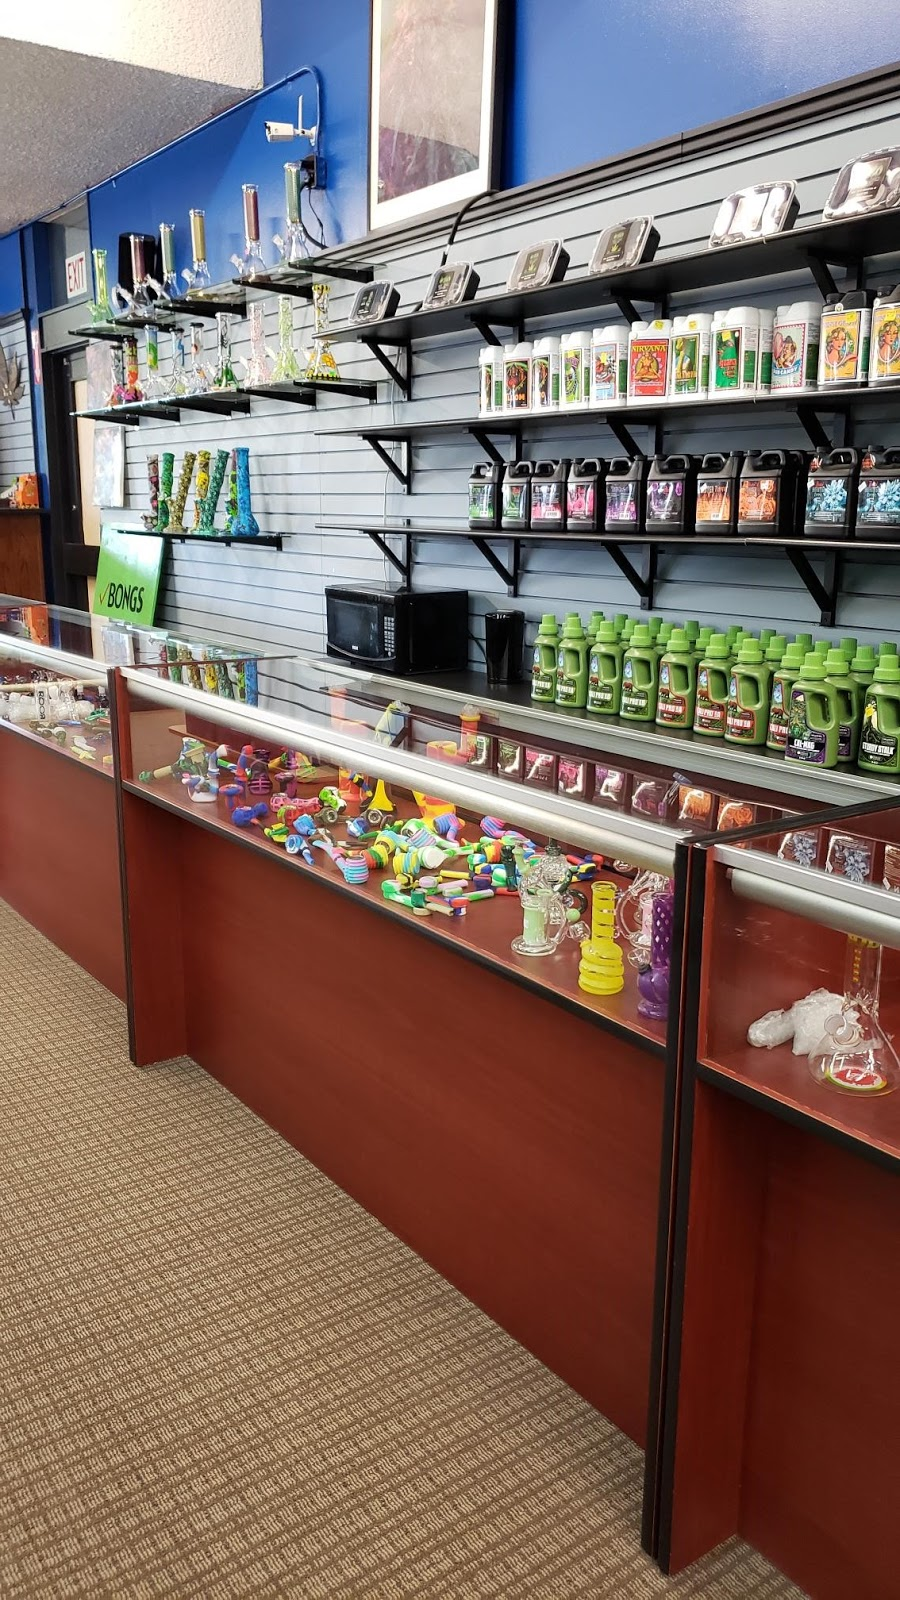 420 grow room supplies | store | 12909 127 St NW, Edmonton, AB T5L 1B1, Canada | 7802671574 OR +1 780-267-1574